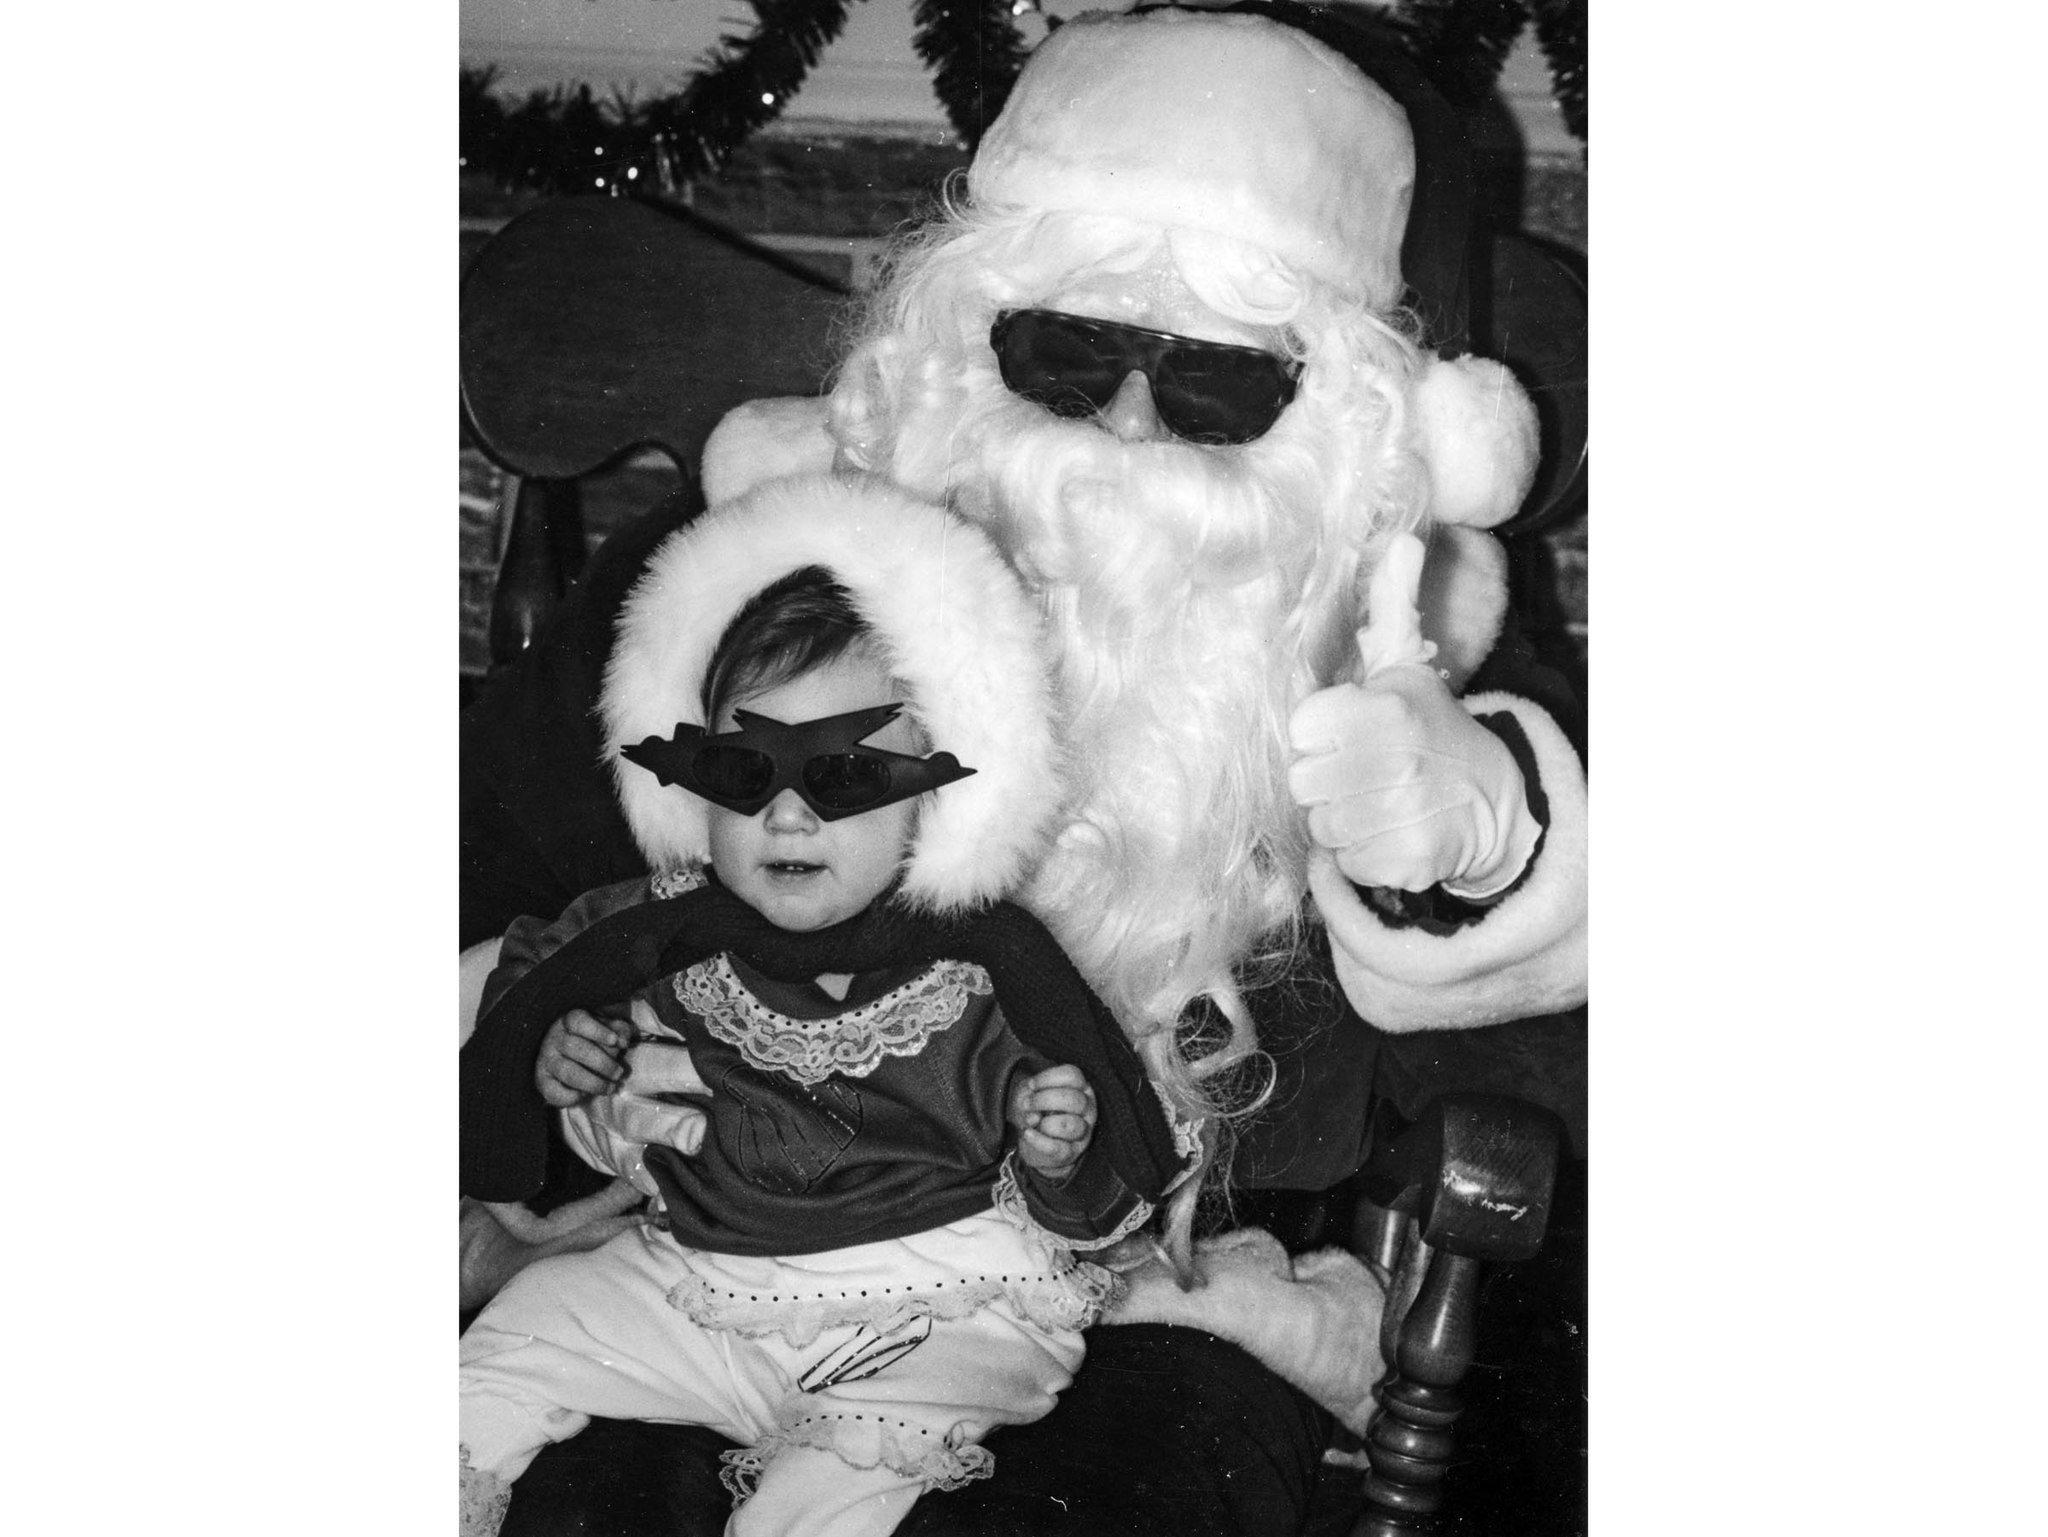 Dec. 8, 1990: Santa wears sunglasses to match Olivia Senecal, 11-month, at the Rolling Hills Plaza.